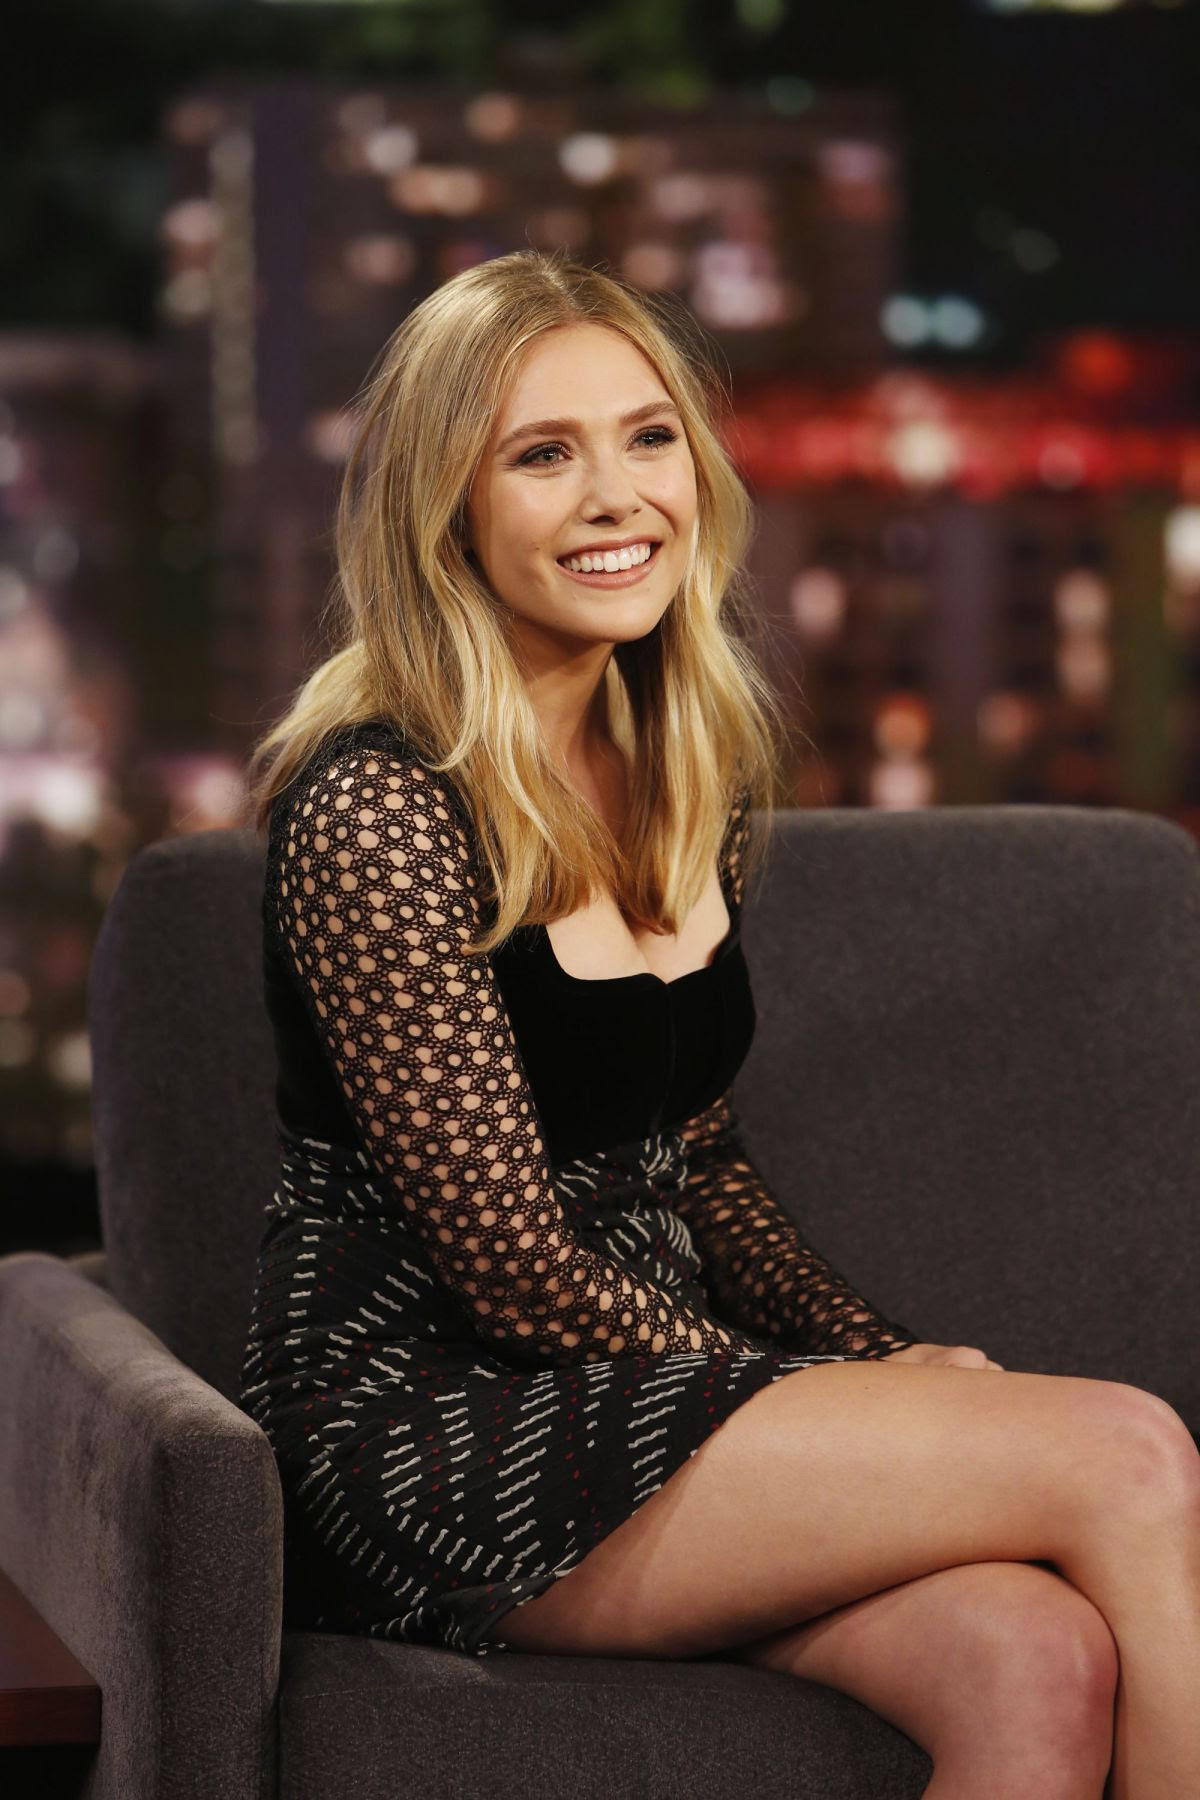 ELIZABETH OLSEN at Jimmy Kimmel Live in Los Angeles 03/21/2016